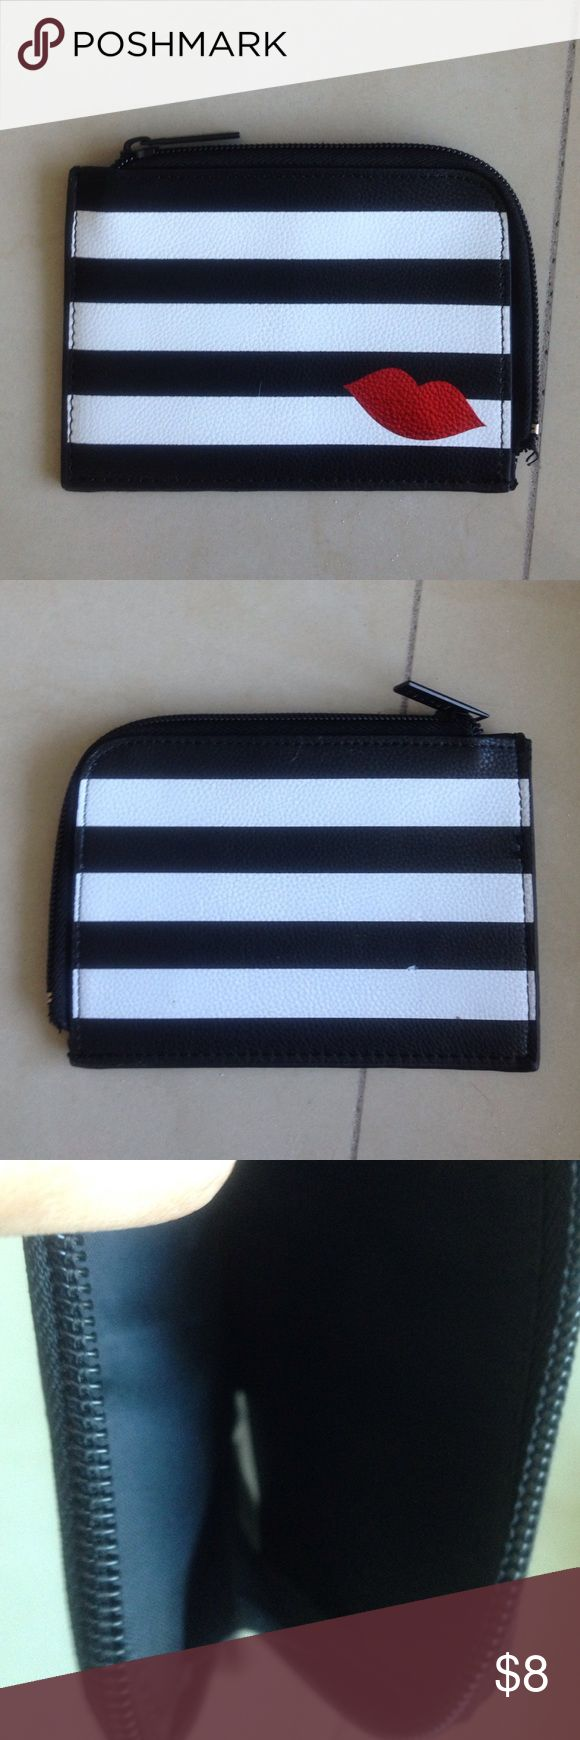 Lips Black and White Striped coin case by Sephora Black and white stripes lips coin case by Sephora - New! Sephora Accessories Key & Card Holders